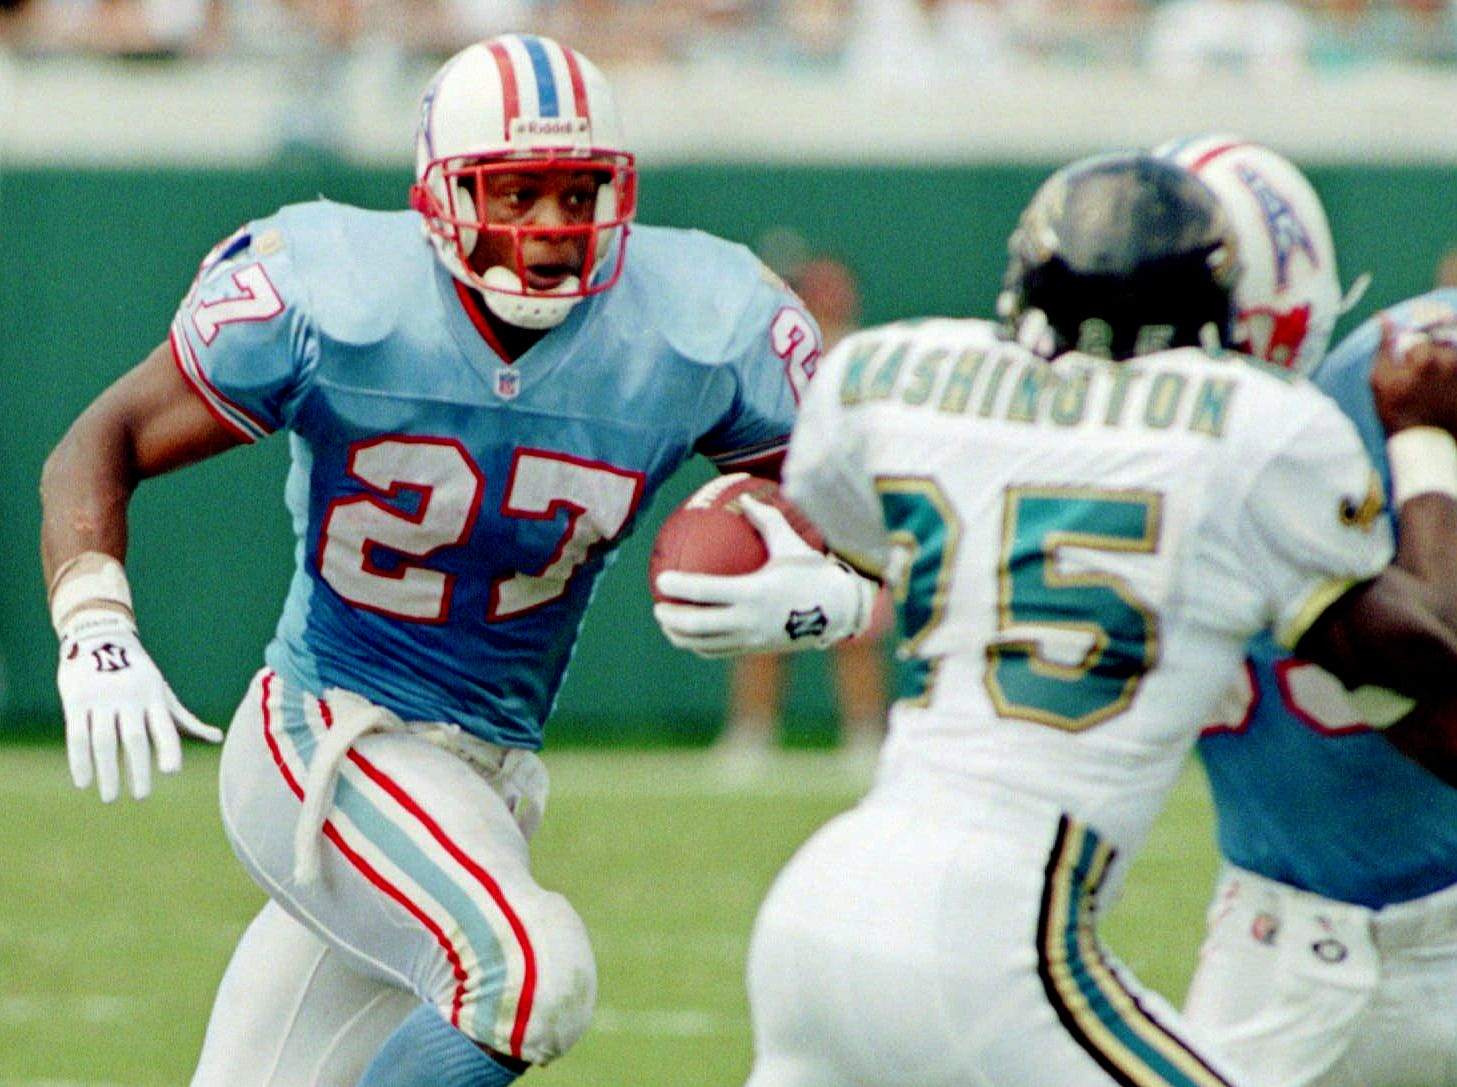 Houston Oilers running back Eddie George (27) follows a block on Jacksonville's Mickey Washington (25) to pick up yardage during their game Sept. 8, 1996 in Jacksonville. George ran for 143 yards on 17 carries in the Oilers 34-17 win.